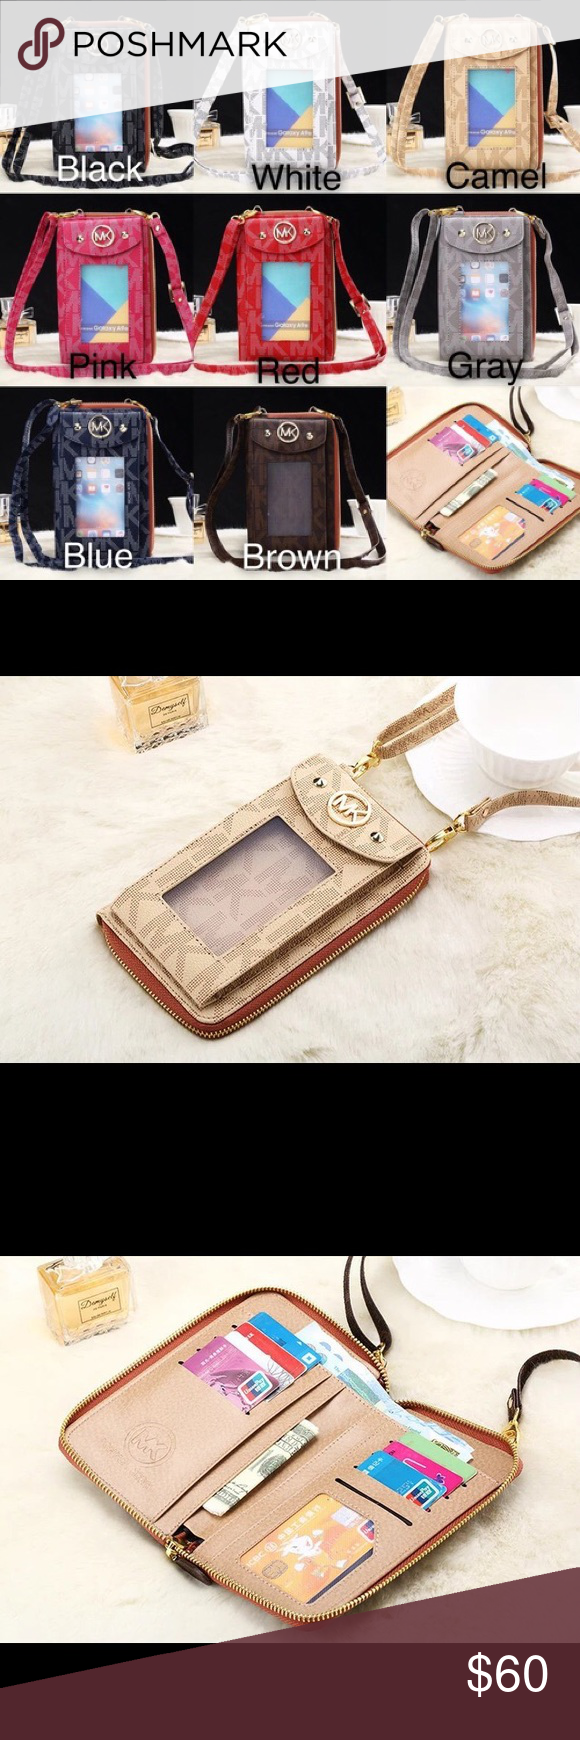 633a88dfabfa8c Michael Kors Crossbody / Wallet / Phone Case Brand new, this is a crossbody  wallet/phone case. Any and all cell phones will fit! Michael Kors Bags  Wallets